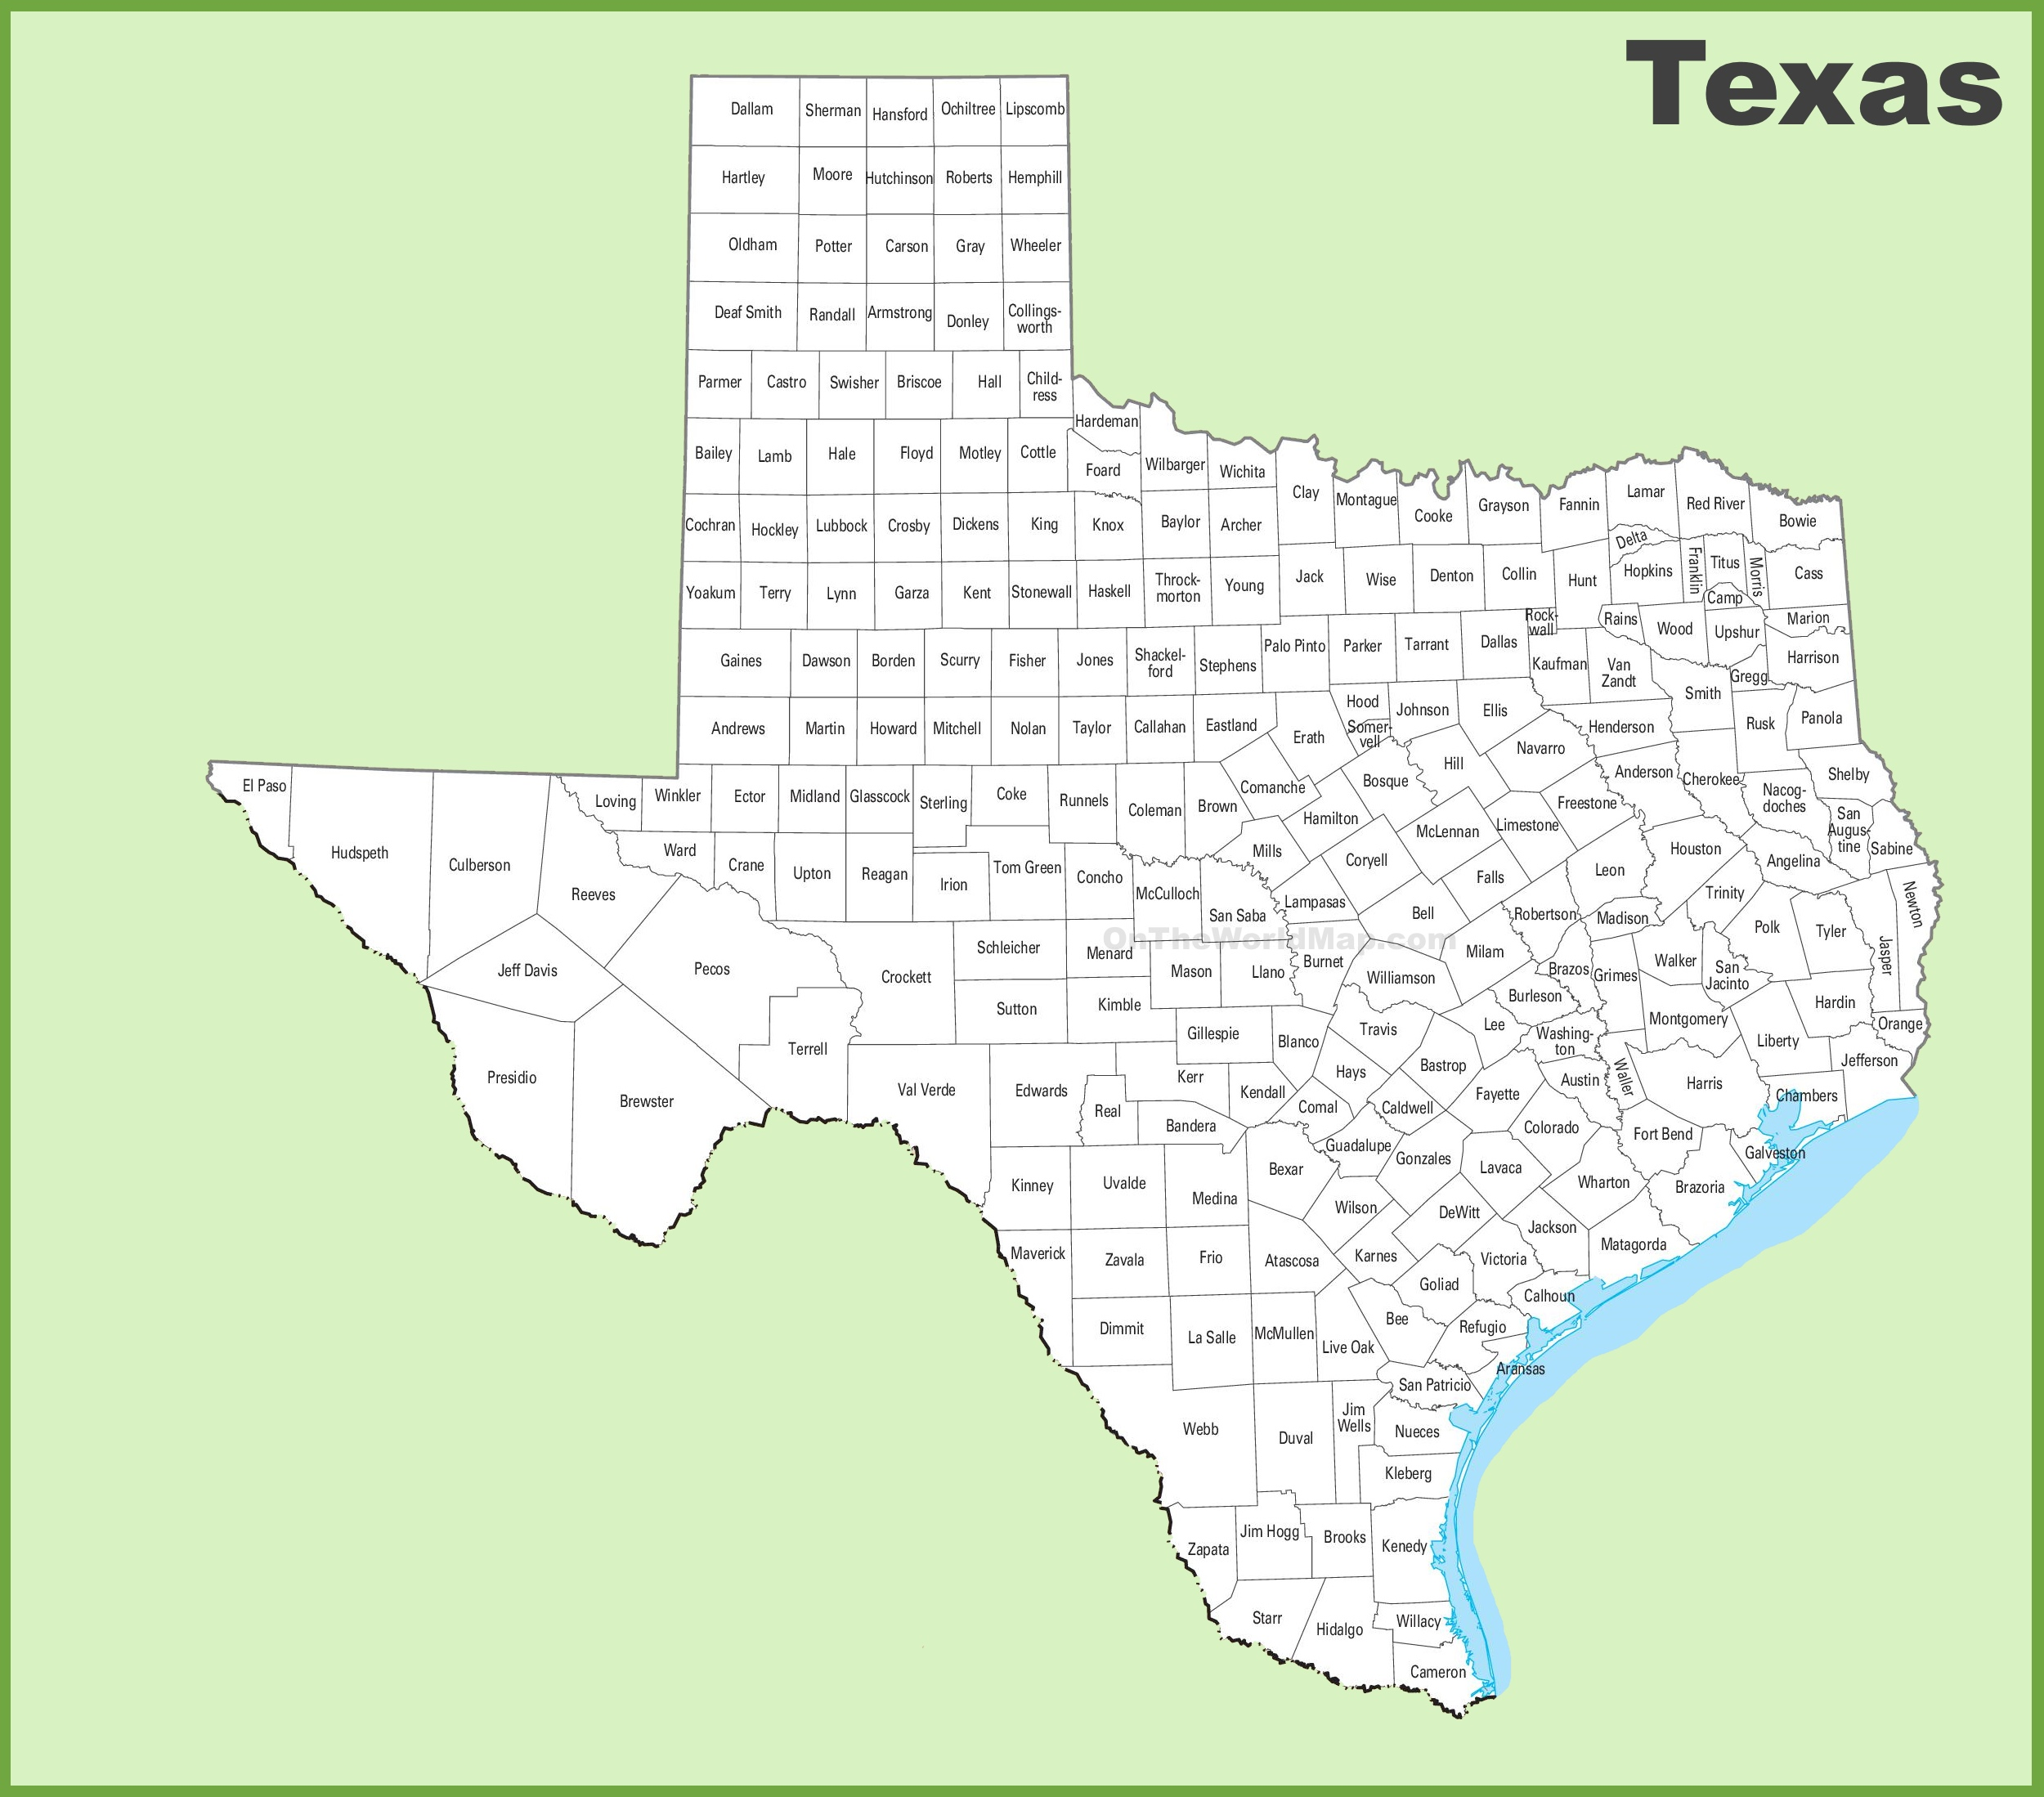 photo regarding Printable Texas County Map named Texas county map